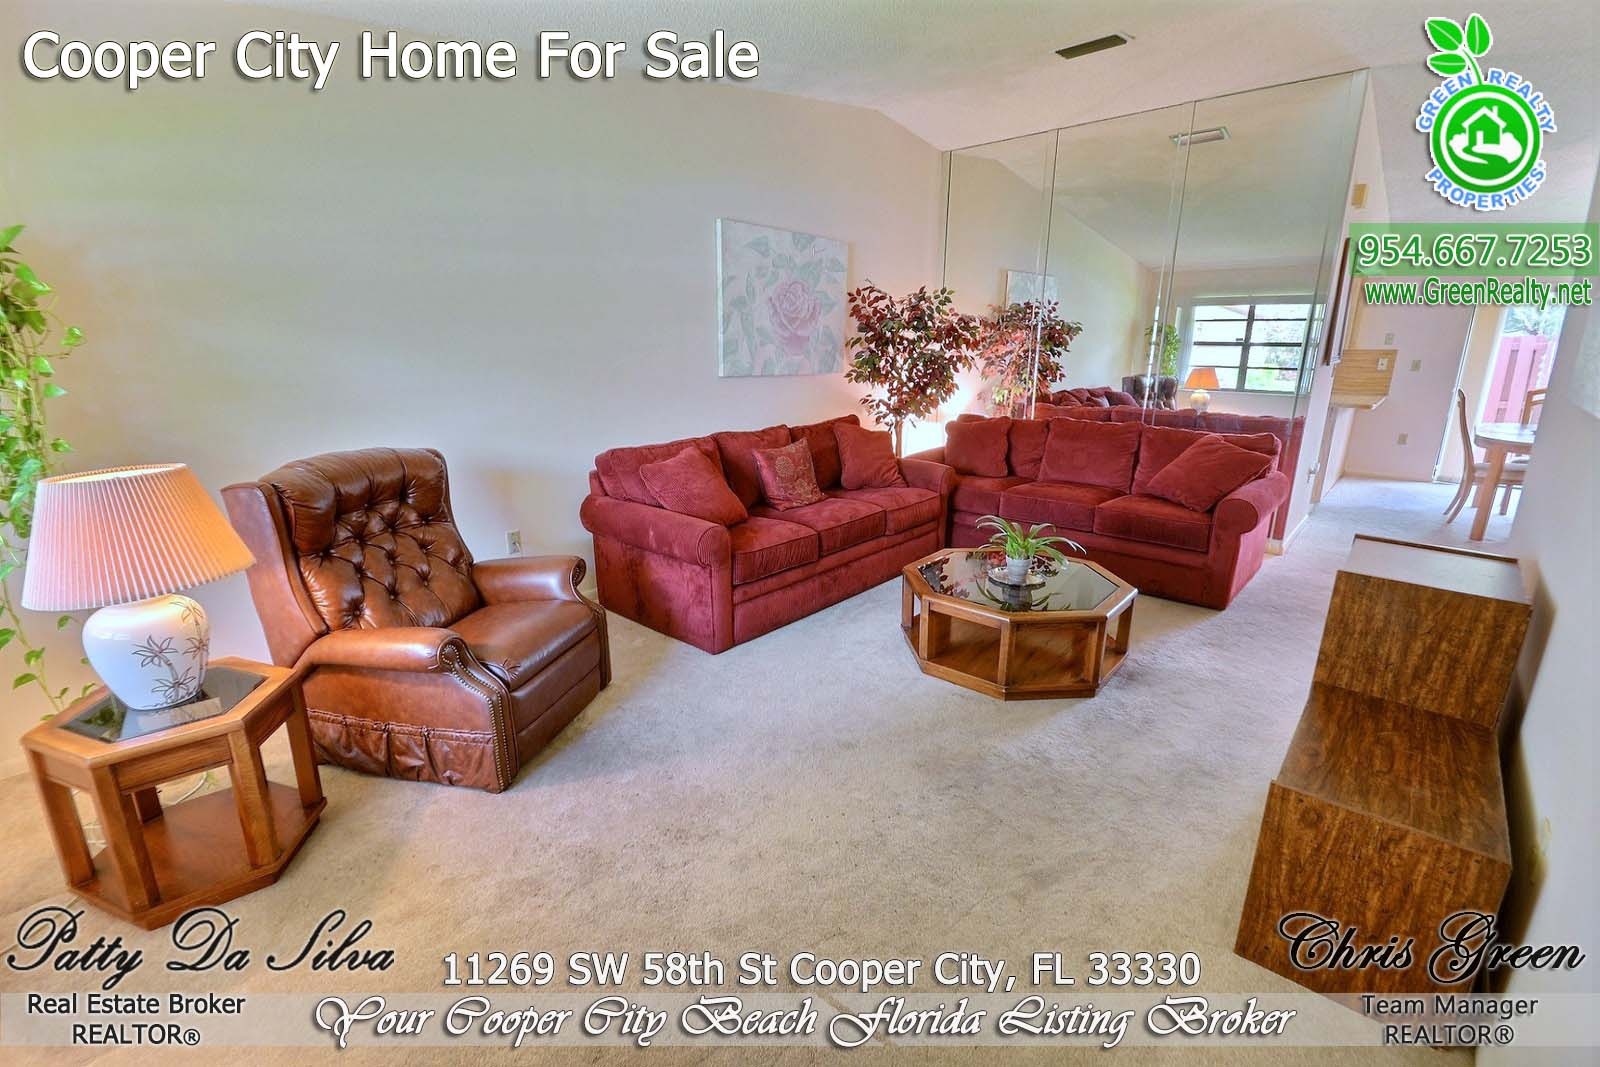 4 Cooper City Real Estate - Villas (9)